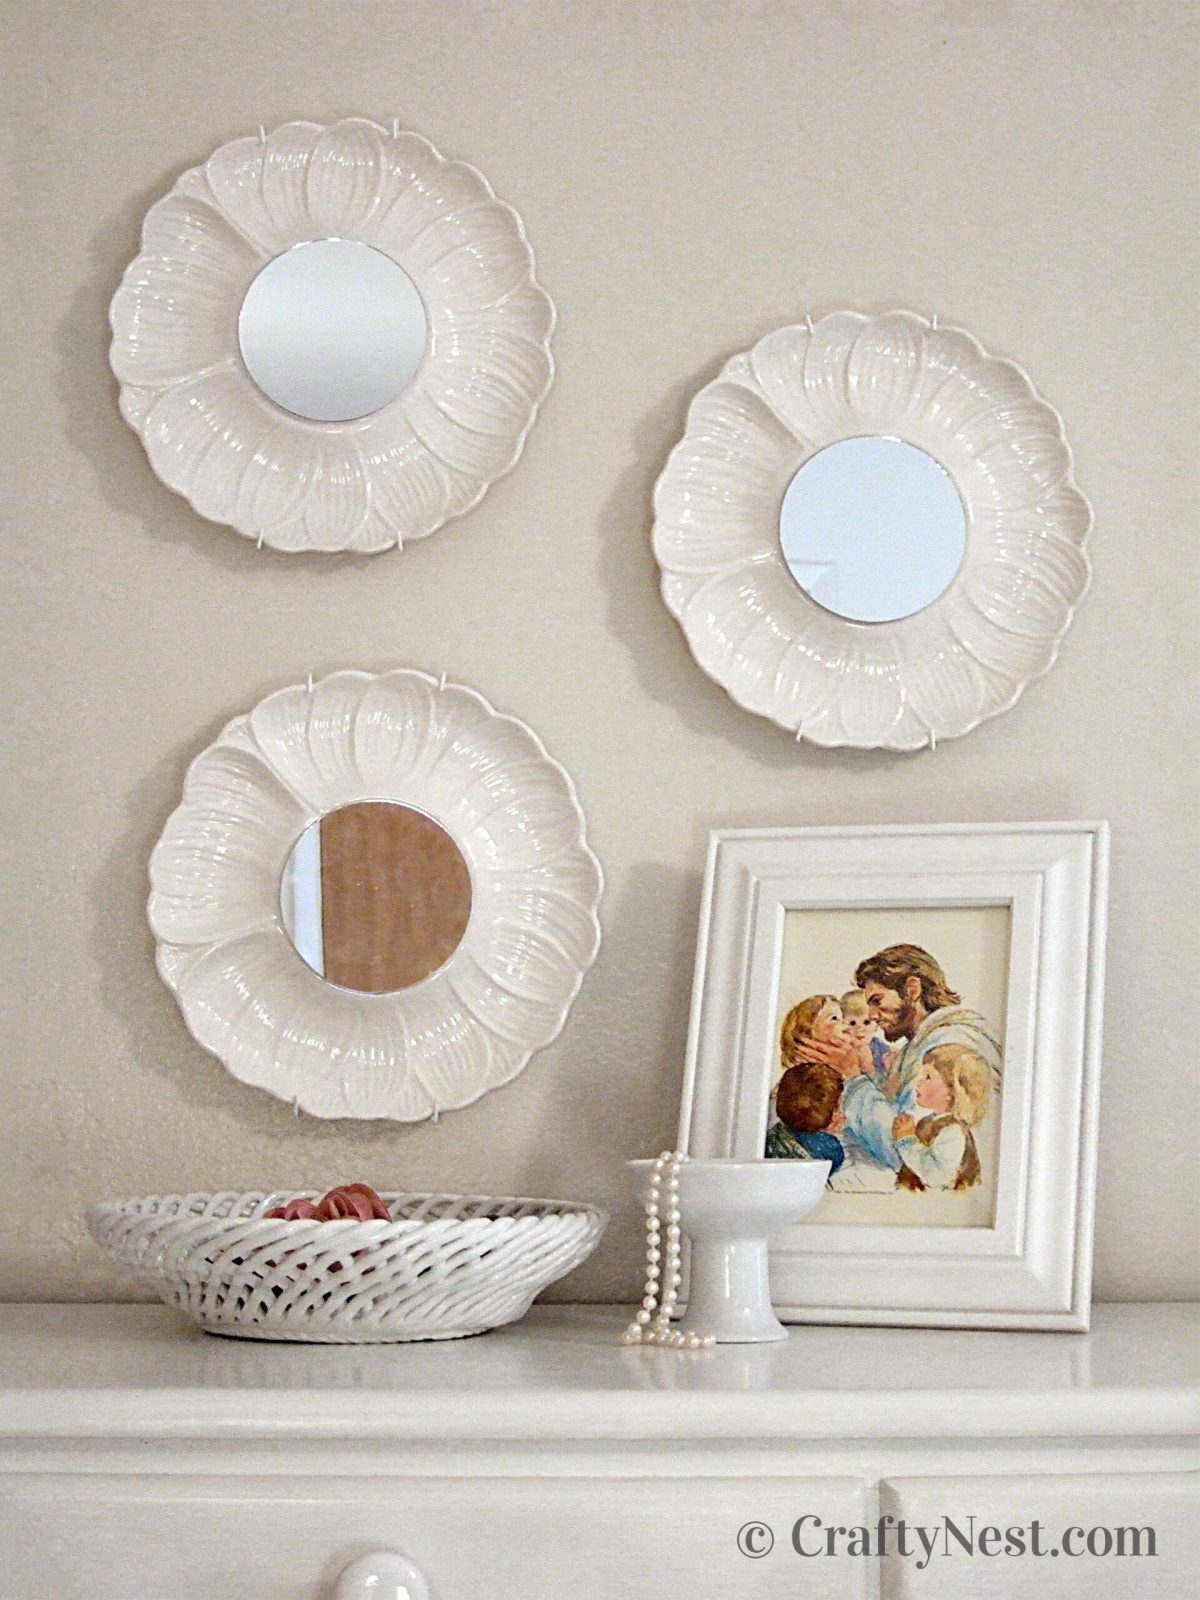 Three artichoke plates with mirrors hanging above a dresser, photo